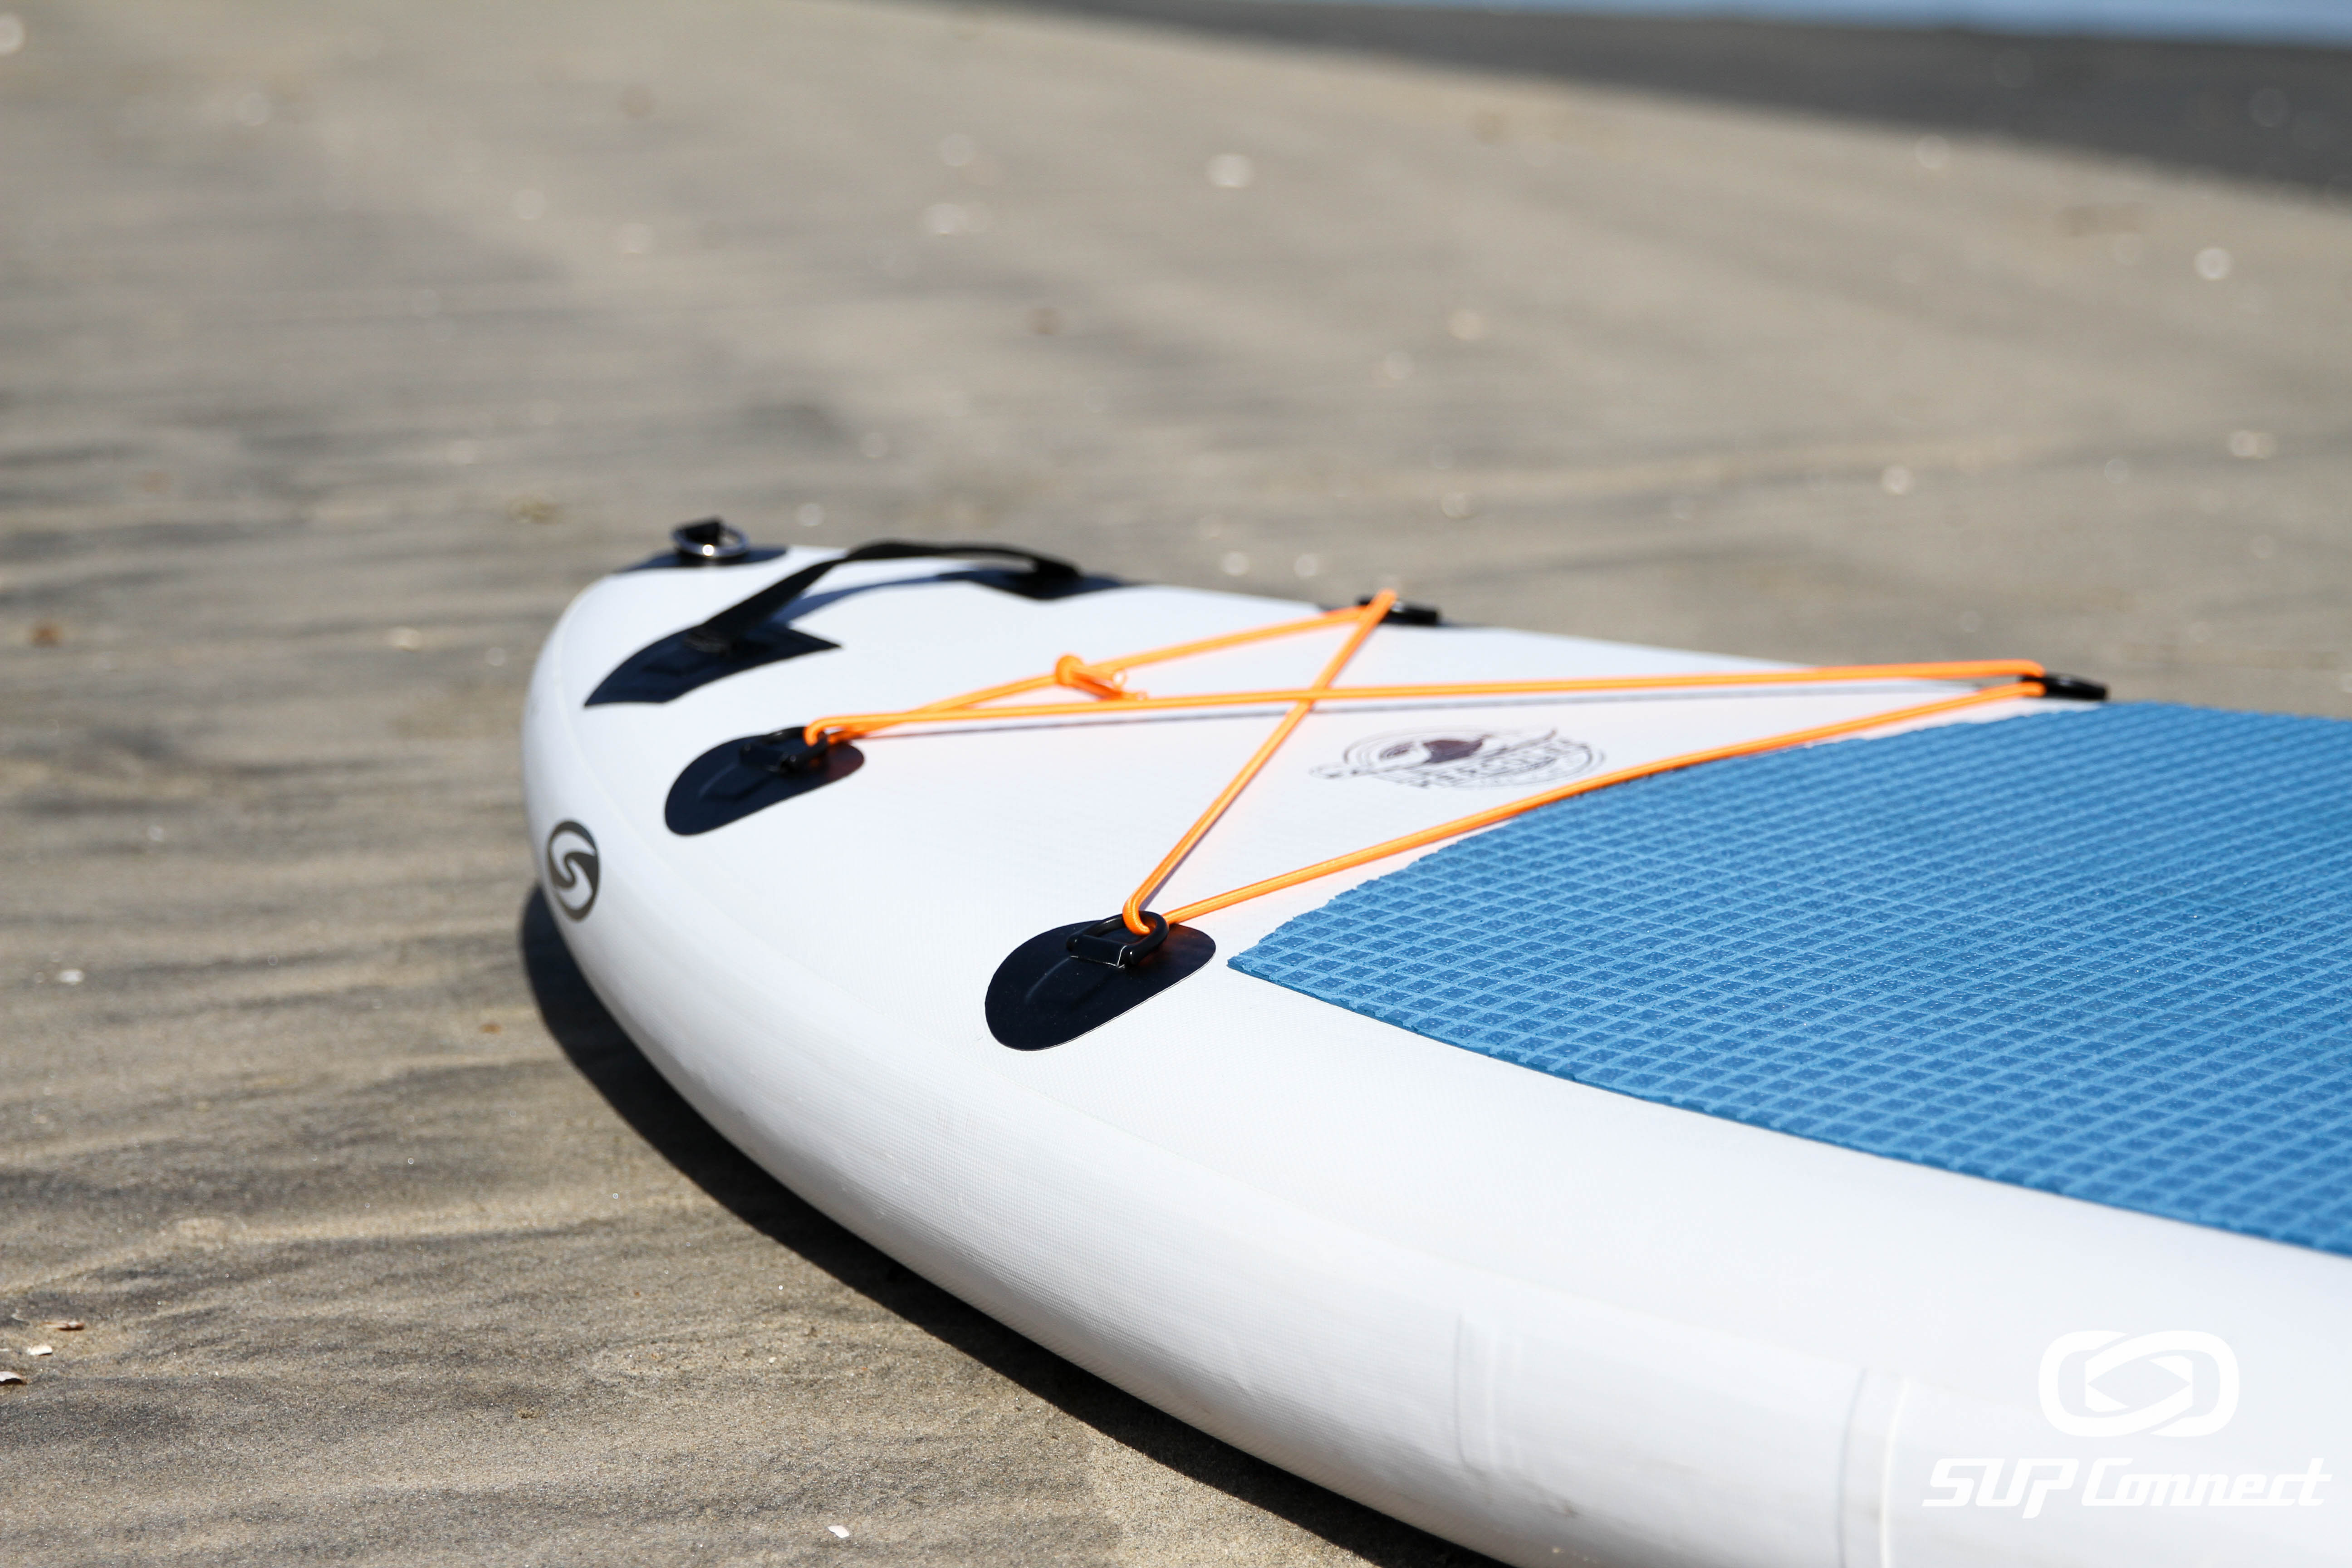 Surftech Hercules Paddle Board Review 2020